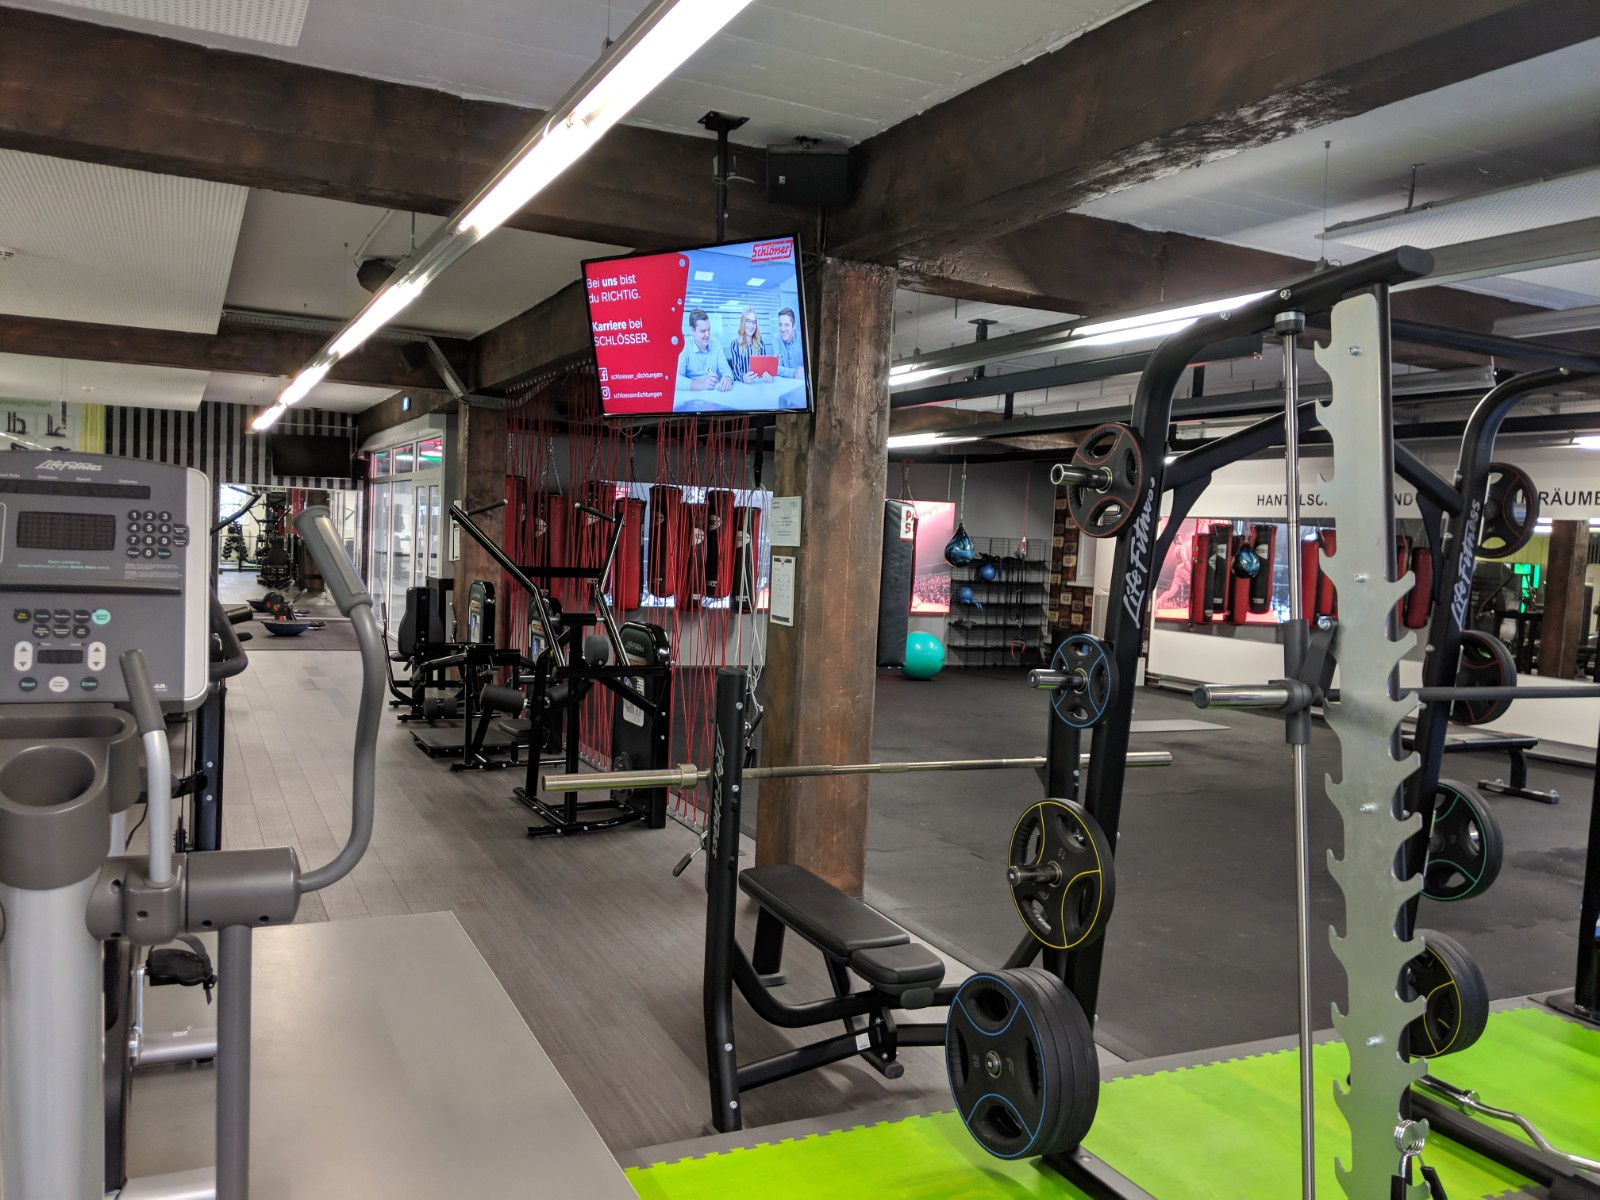 Digital Signage Fitnessstudio